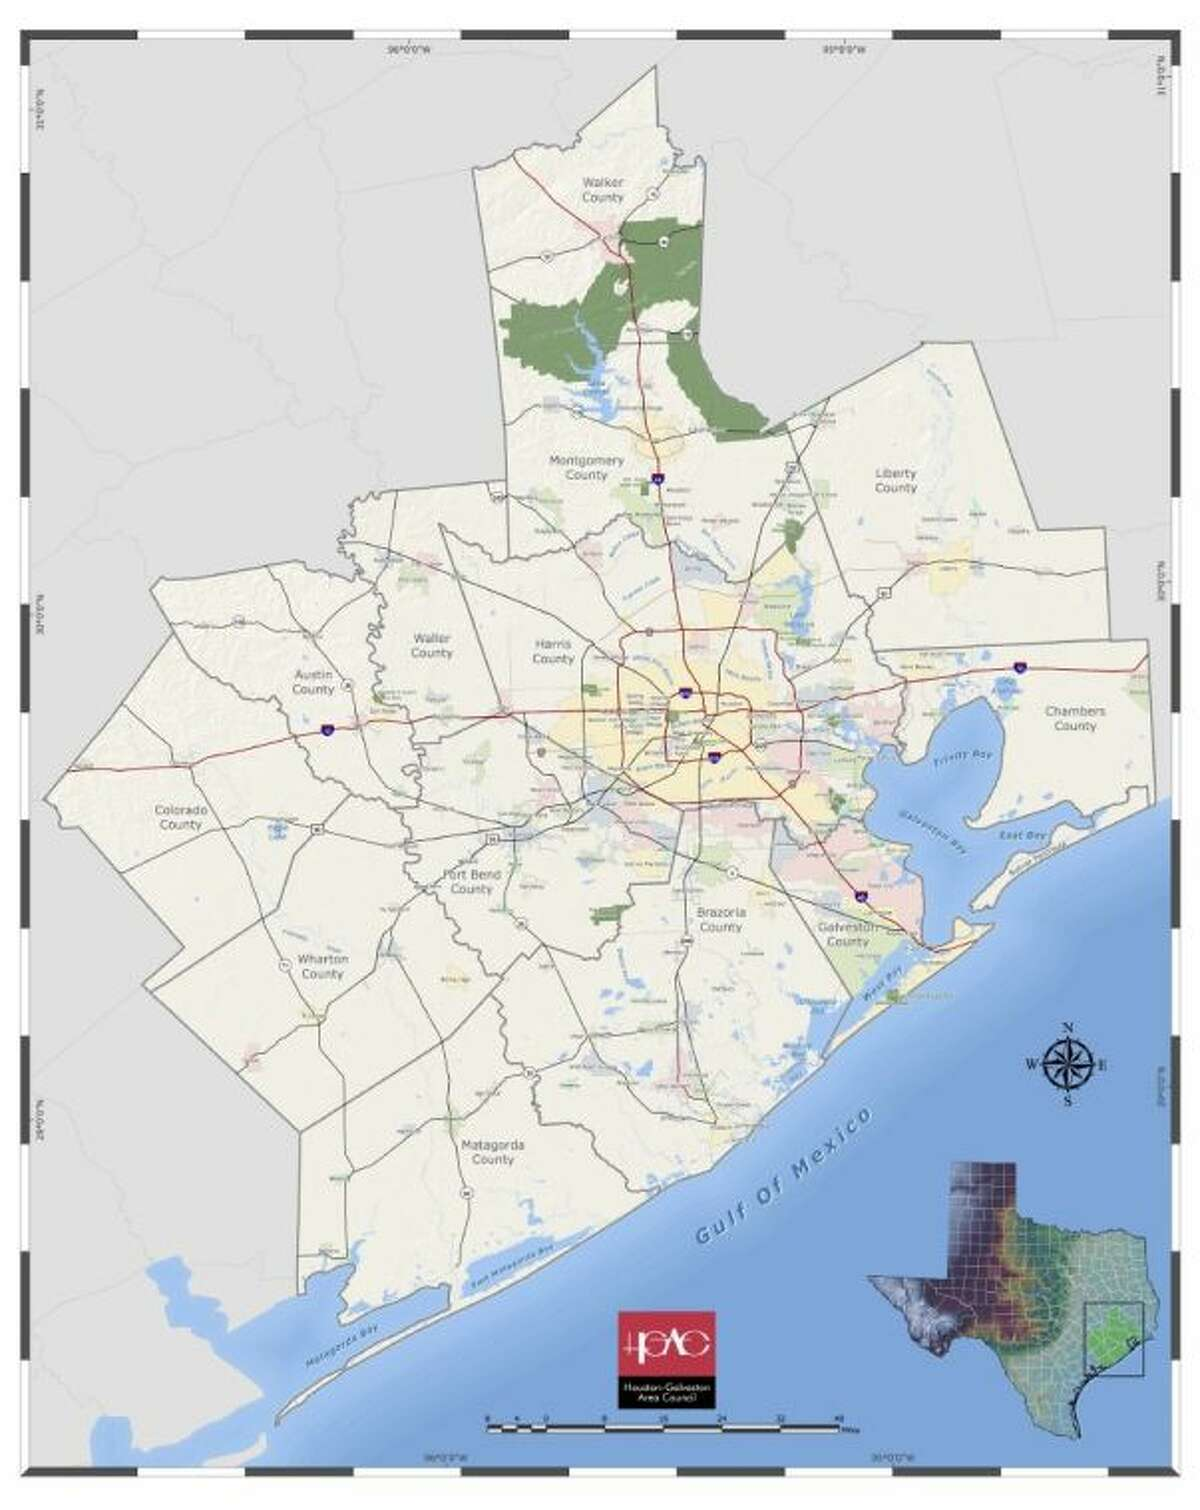 The Houston-Galveston Area Council is made up of representatives from county and city governments in Harris County and 12 surrounding counties, including Liberty.